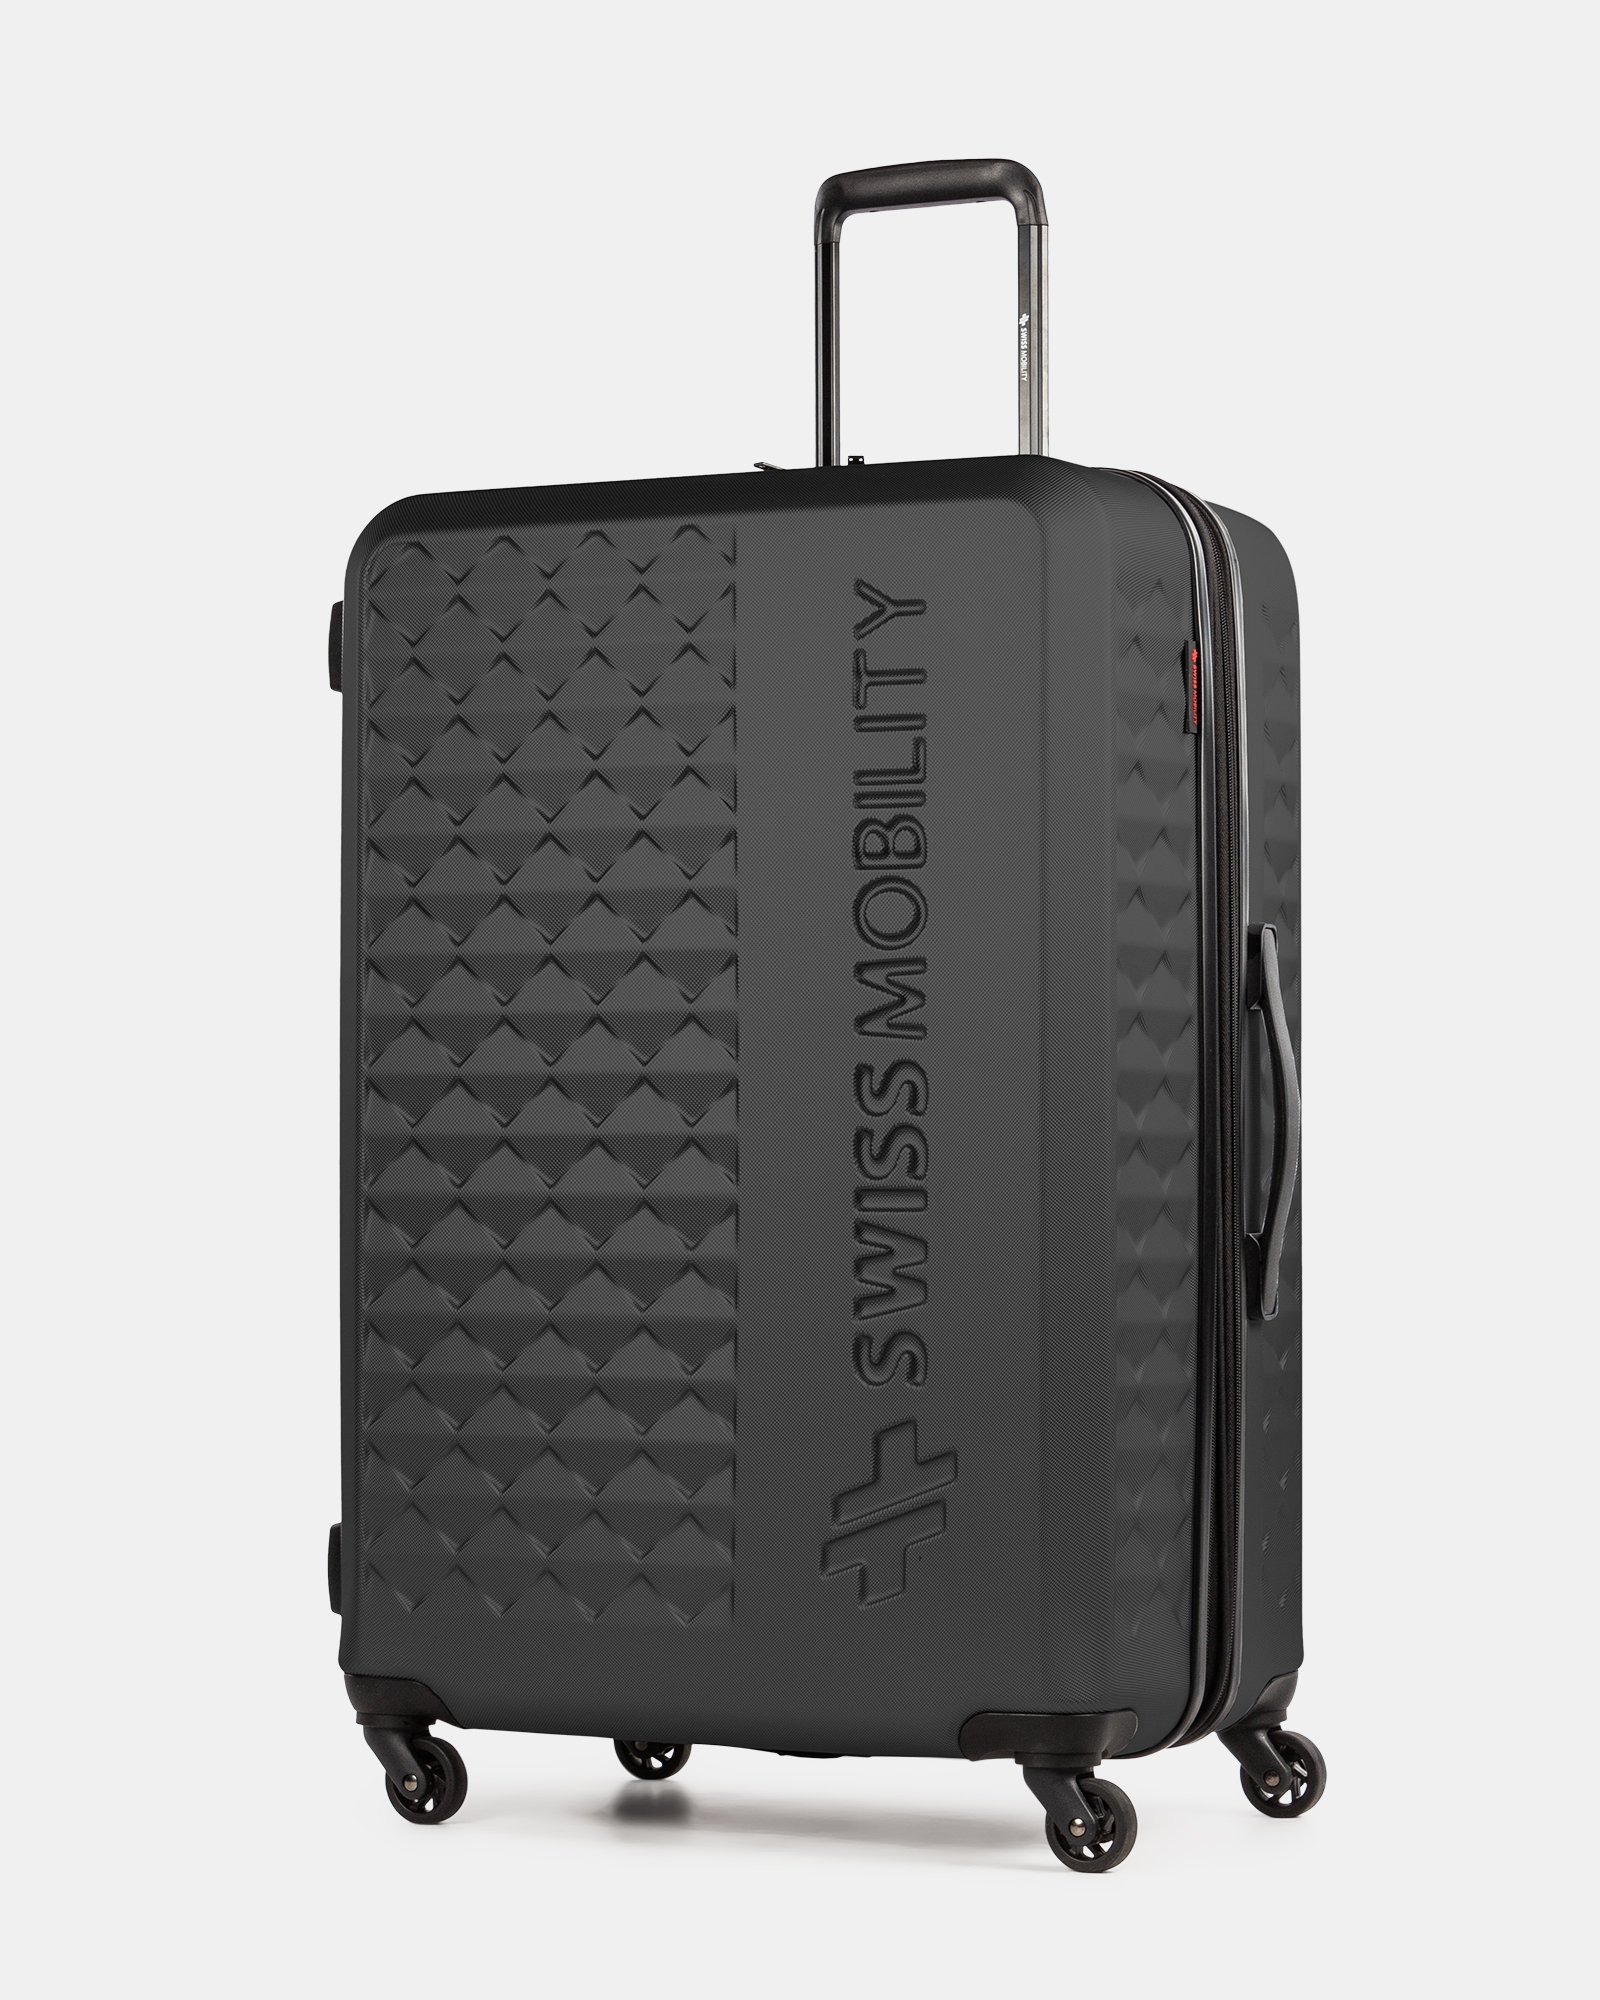 Ridge - Lightweight Hardside Luggage 28'' with Spinner wheels - Black - Swiss Mobility - Zoom